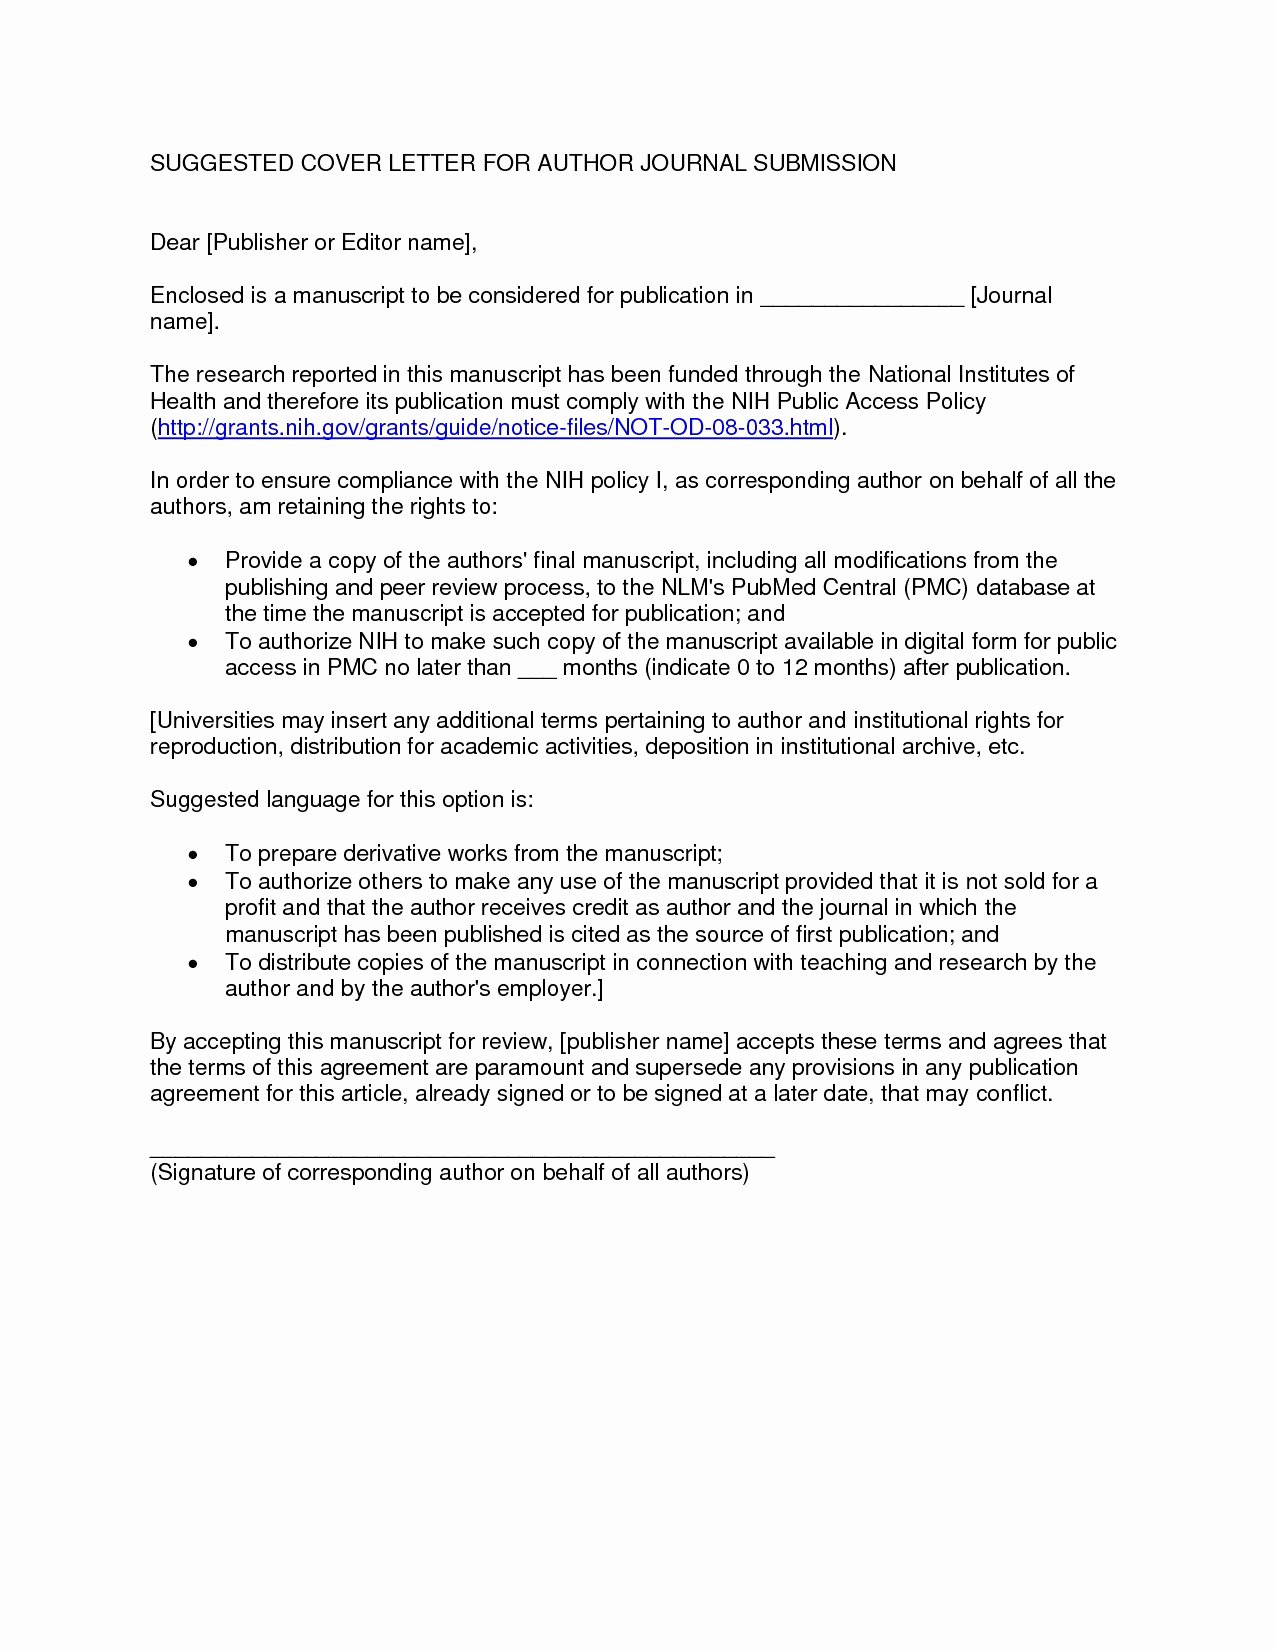 Resume Words To Use Examples Of Really Good Resumes Words To Use For Resume Beautiful